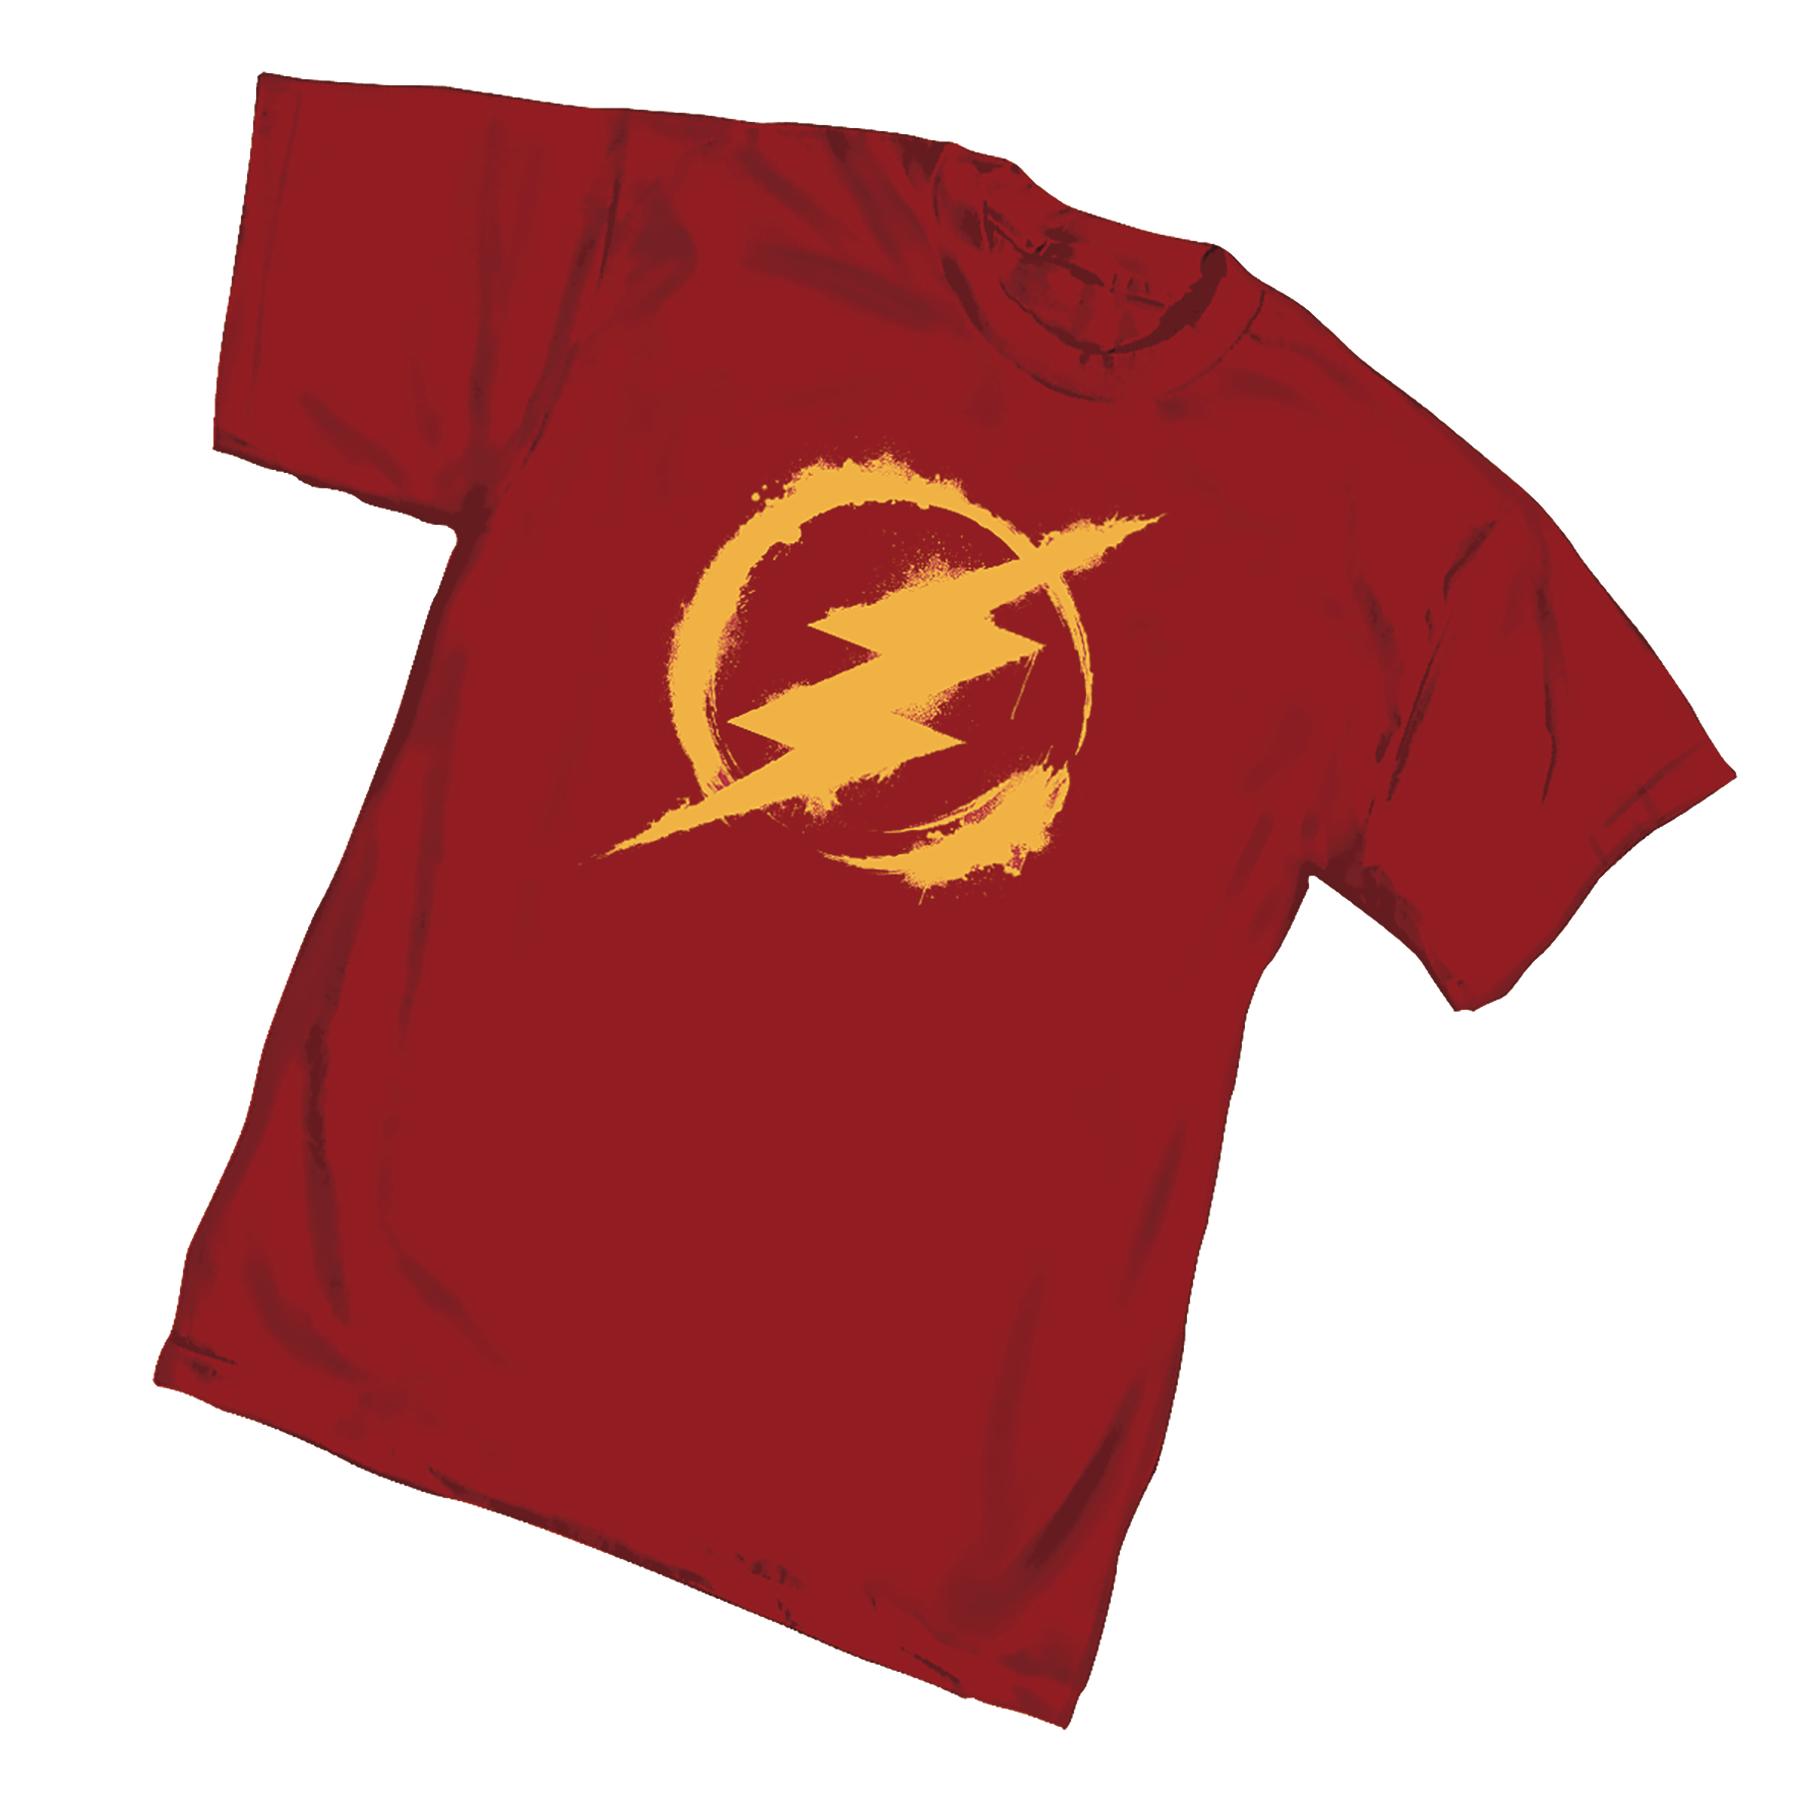 THE FLASH YEAR ONE SYMBOL T/S LG